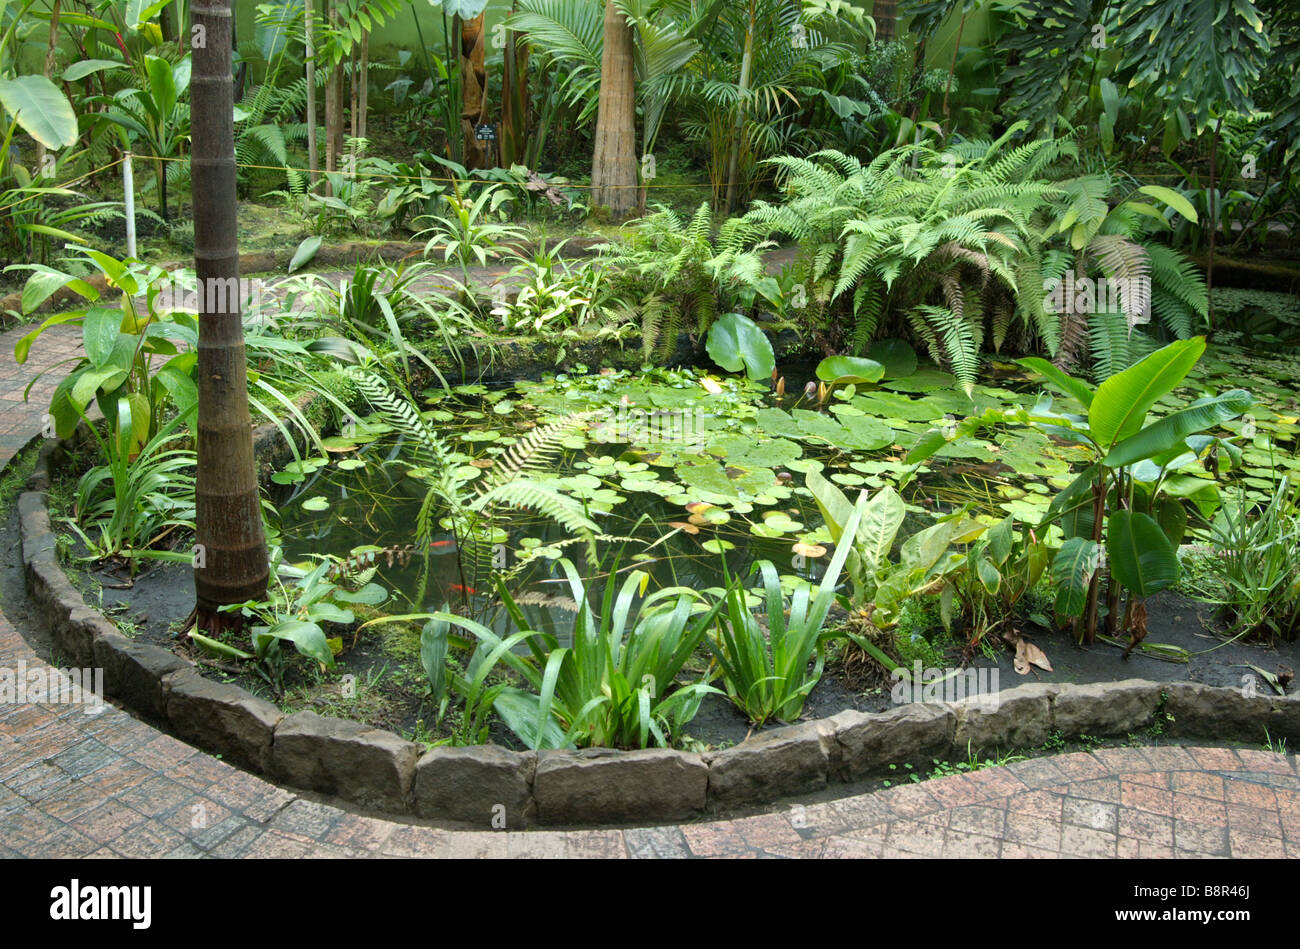 Plants and fauna in an indoor greenhouse bogota botanical for Indoor botanical gardens